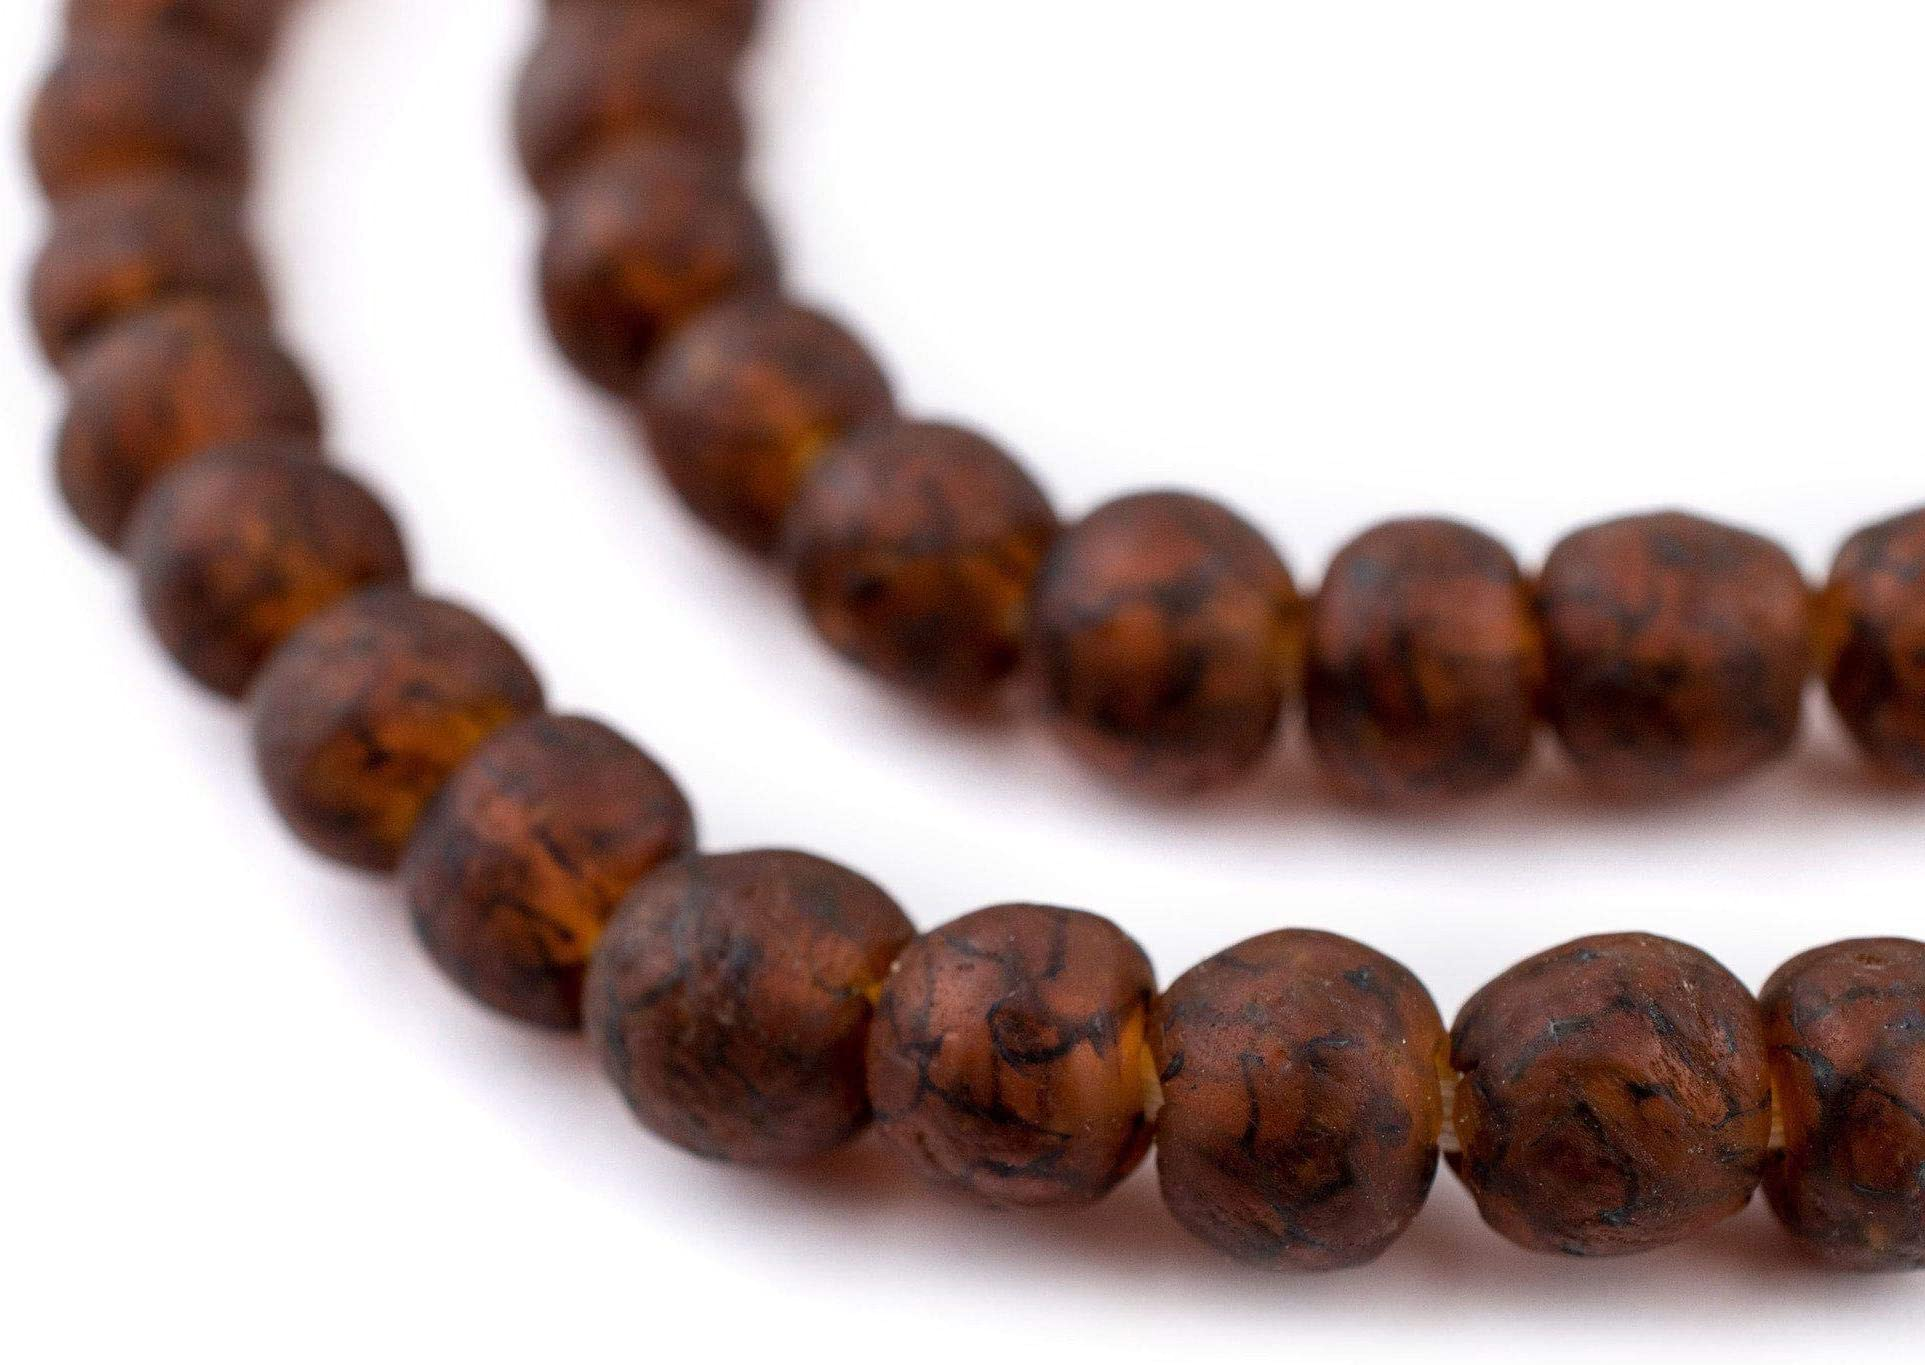 Handmade powder glass recycled beads Krobo ethnic tribal necklace African trade